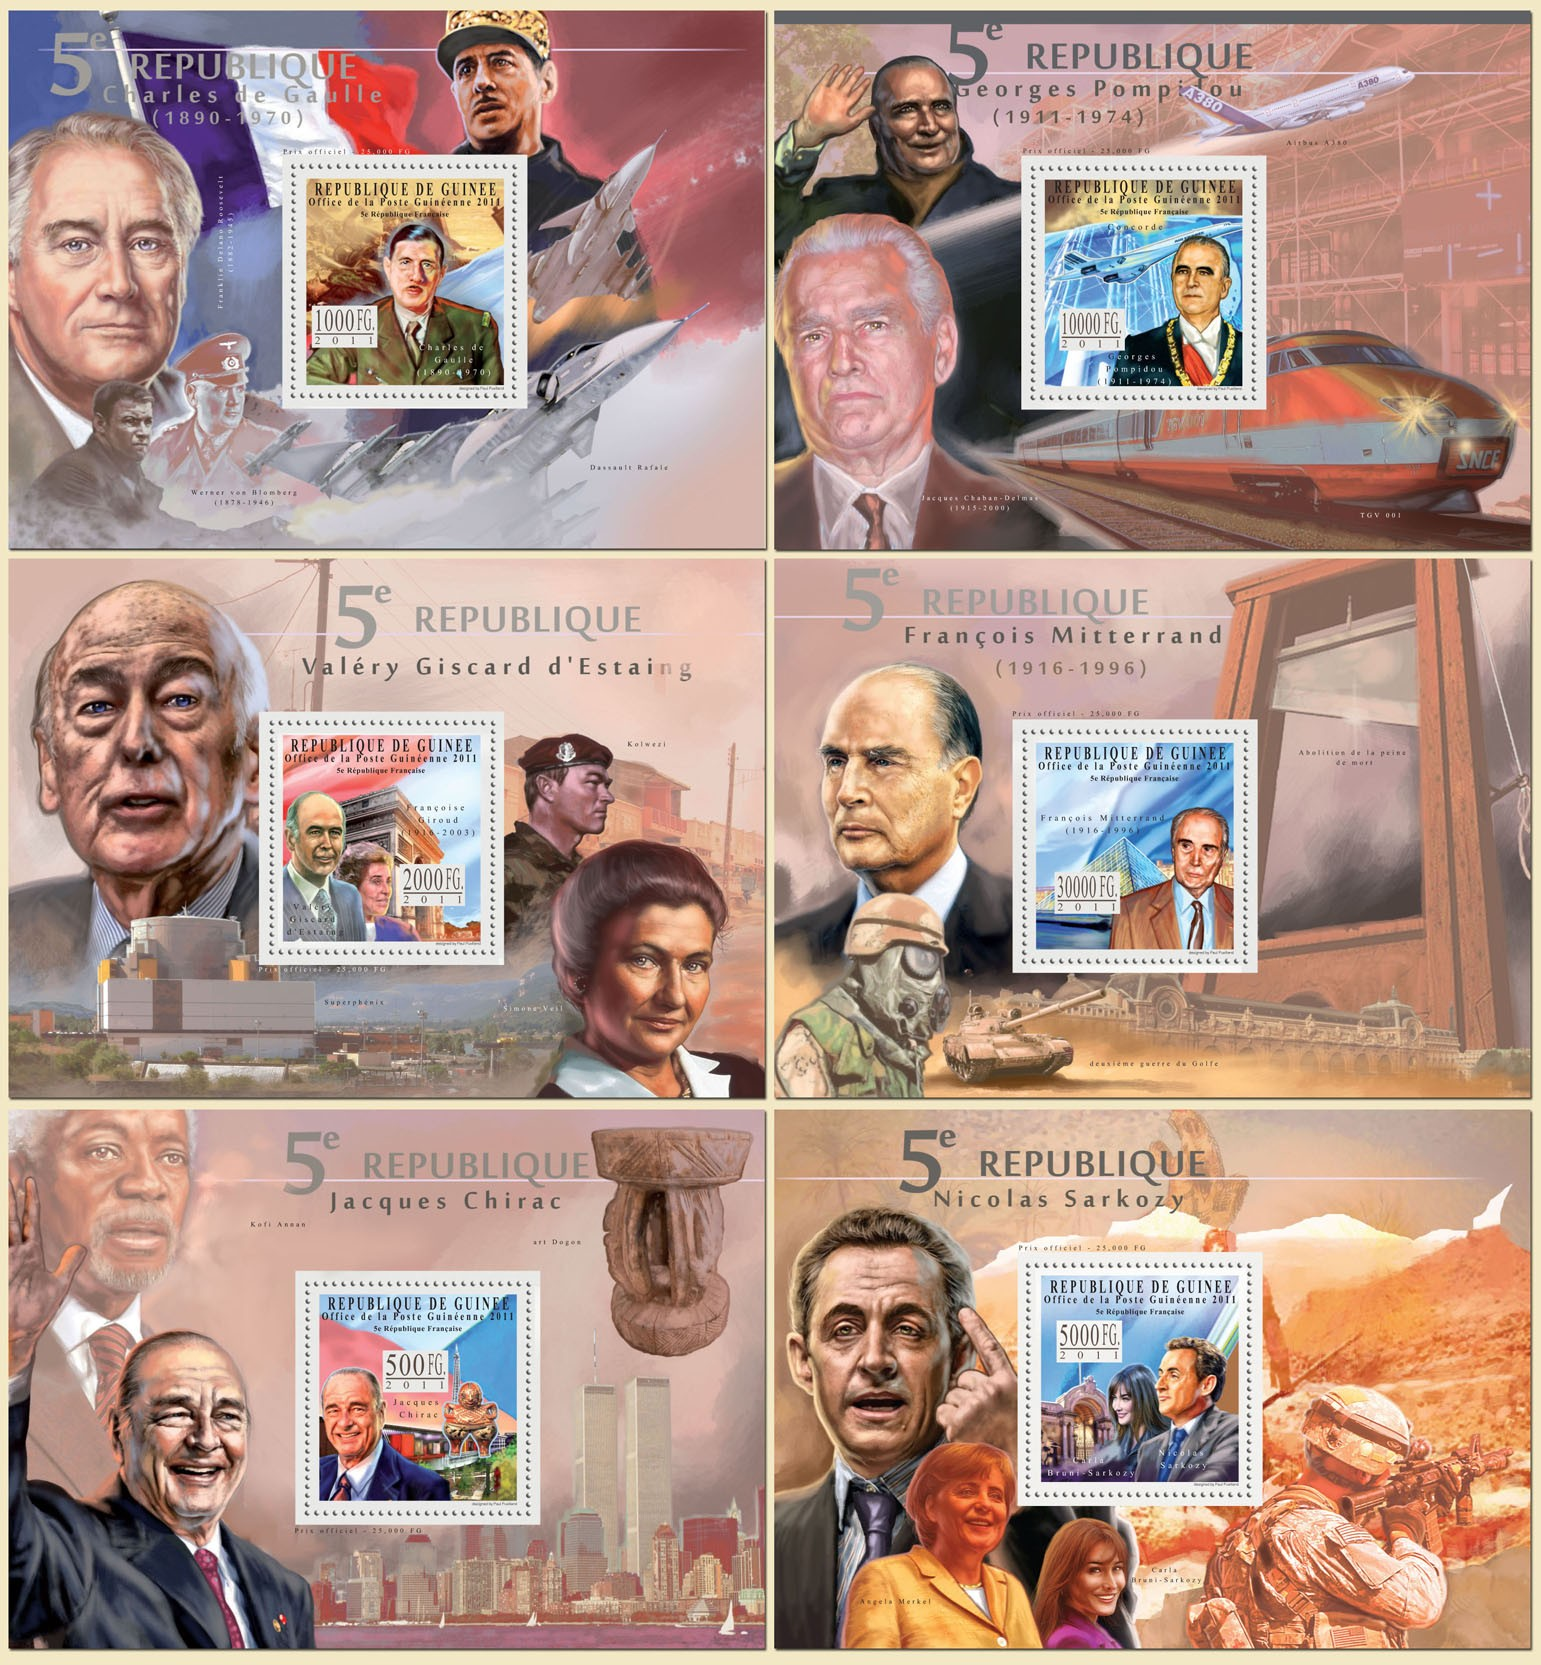 (6 diff. deluxe s/s) 5th French Republic. (C. de Gaulle, G.Pompidou, V.Giscard d?タルEstaing, F.Mitterrand, J.Chorac, N.Sarcoz) - Issue of Guinée postage stamps